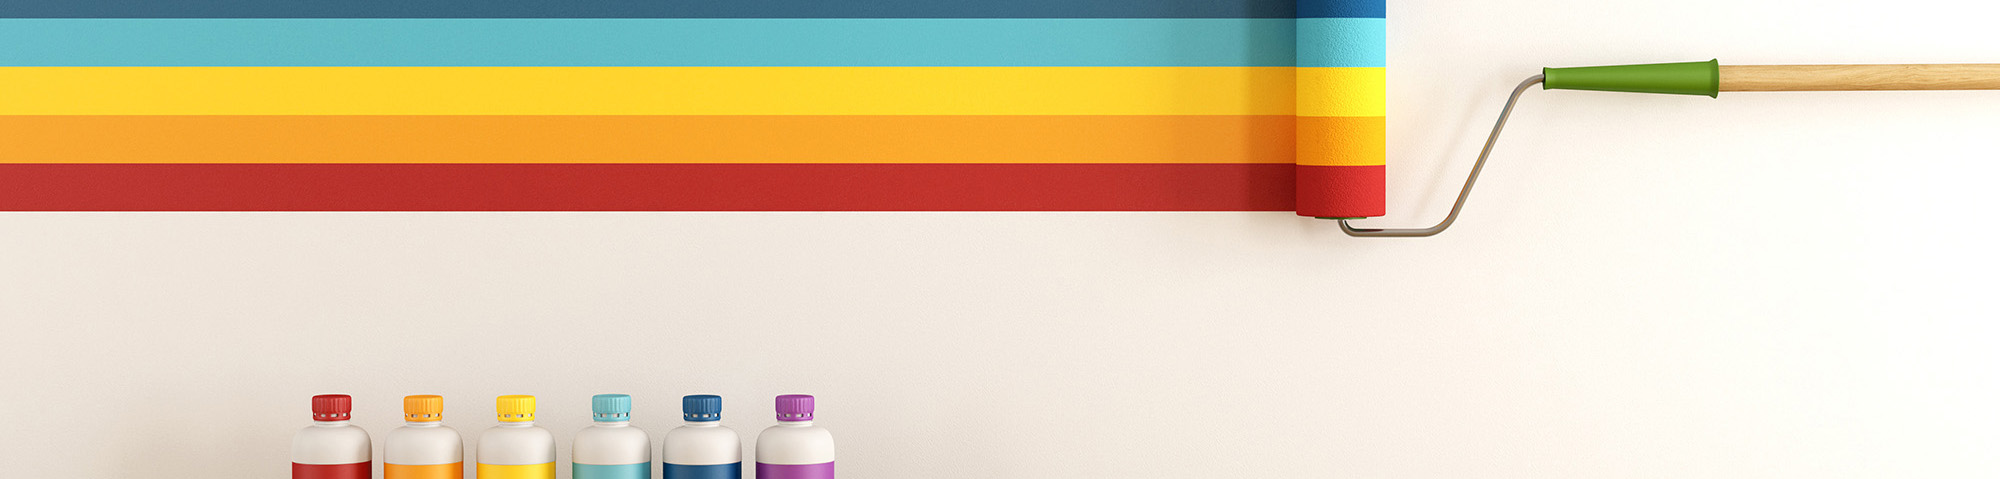 select-color-swatch-to-paint-wall_1